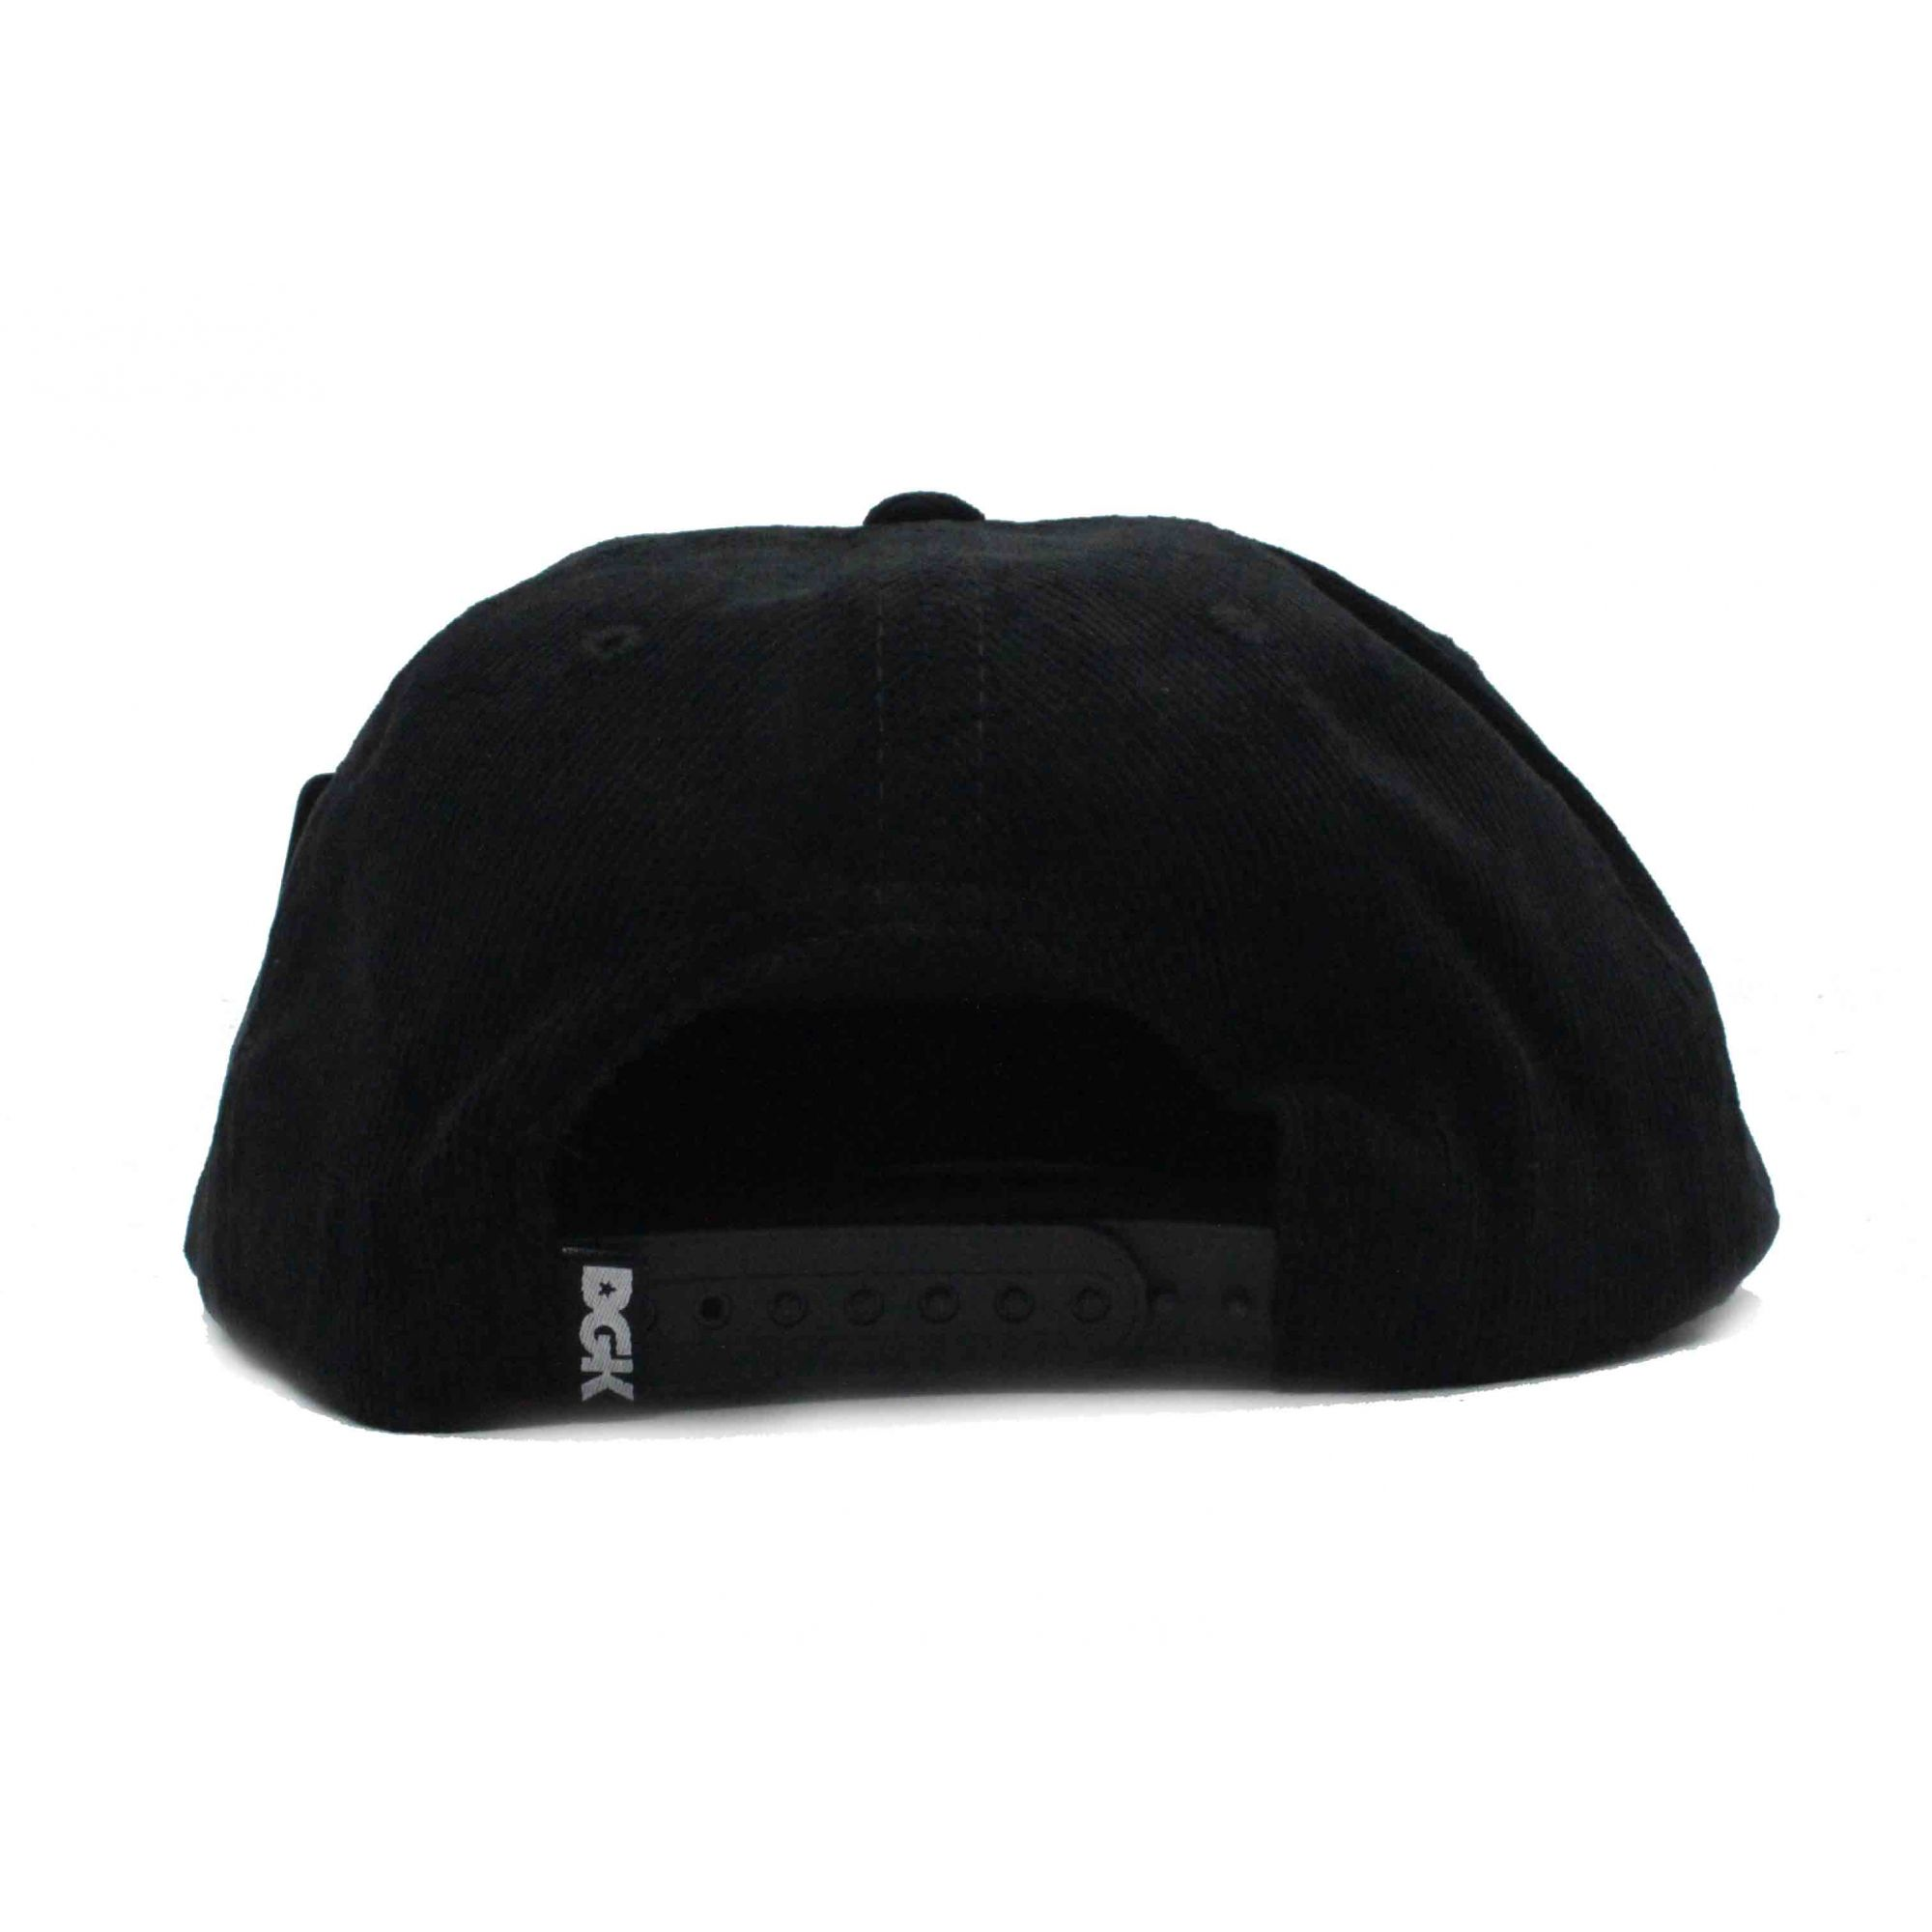 Boné DGK Snapback Major Black